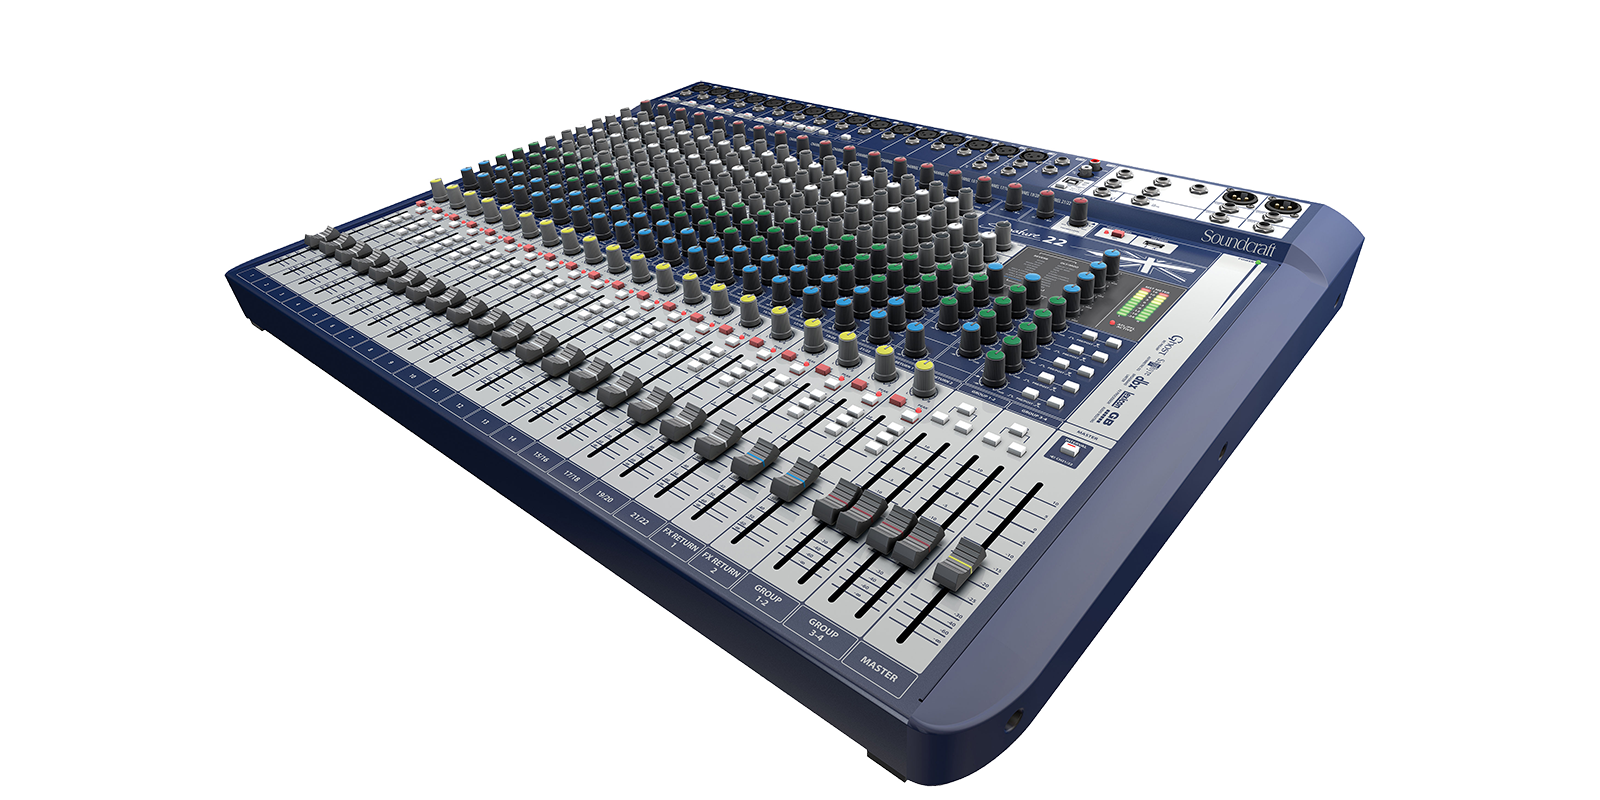 Signature 22 Soundcraft Professional Audio Mixers Preamplifier For Soundcard Larger Images